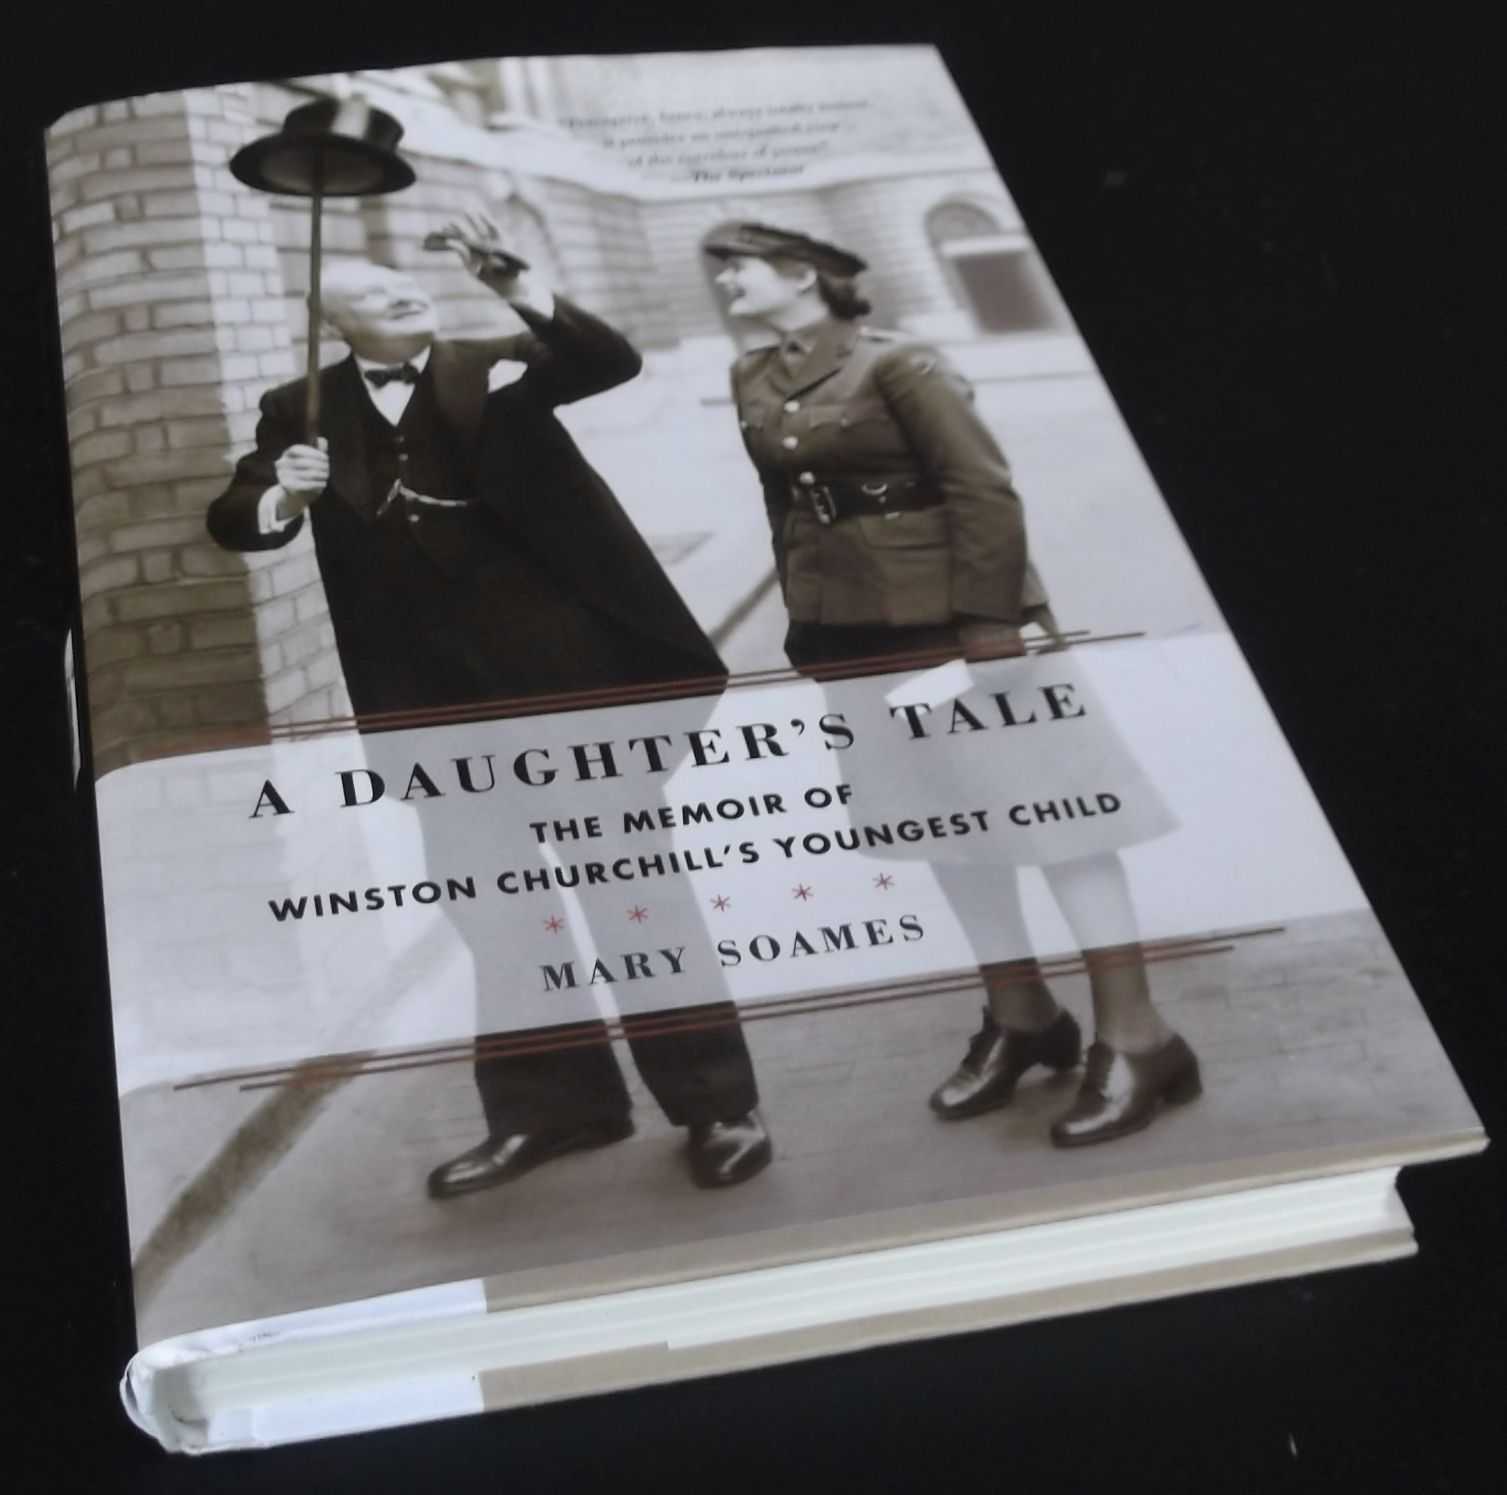 MARY SOAMES - A Daughter's Tale: The Memoir of Winston Churchill's Youngest Child